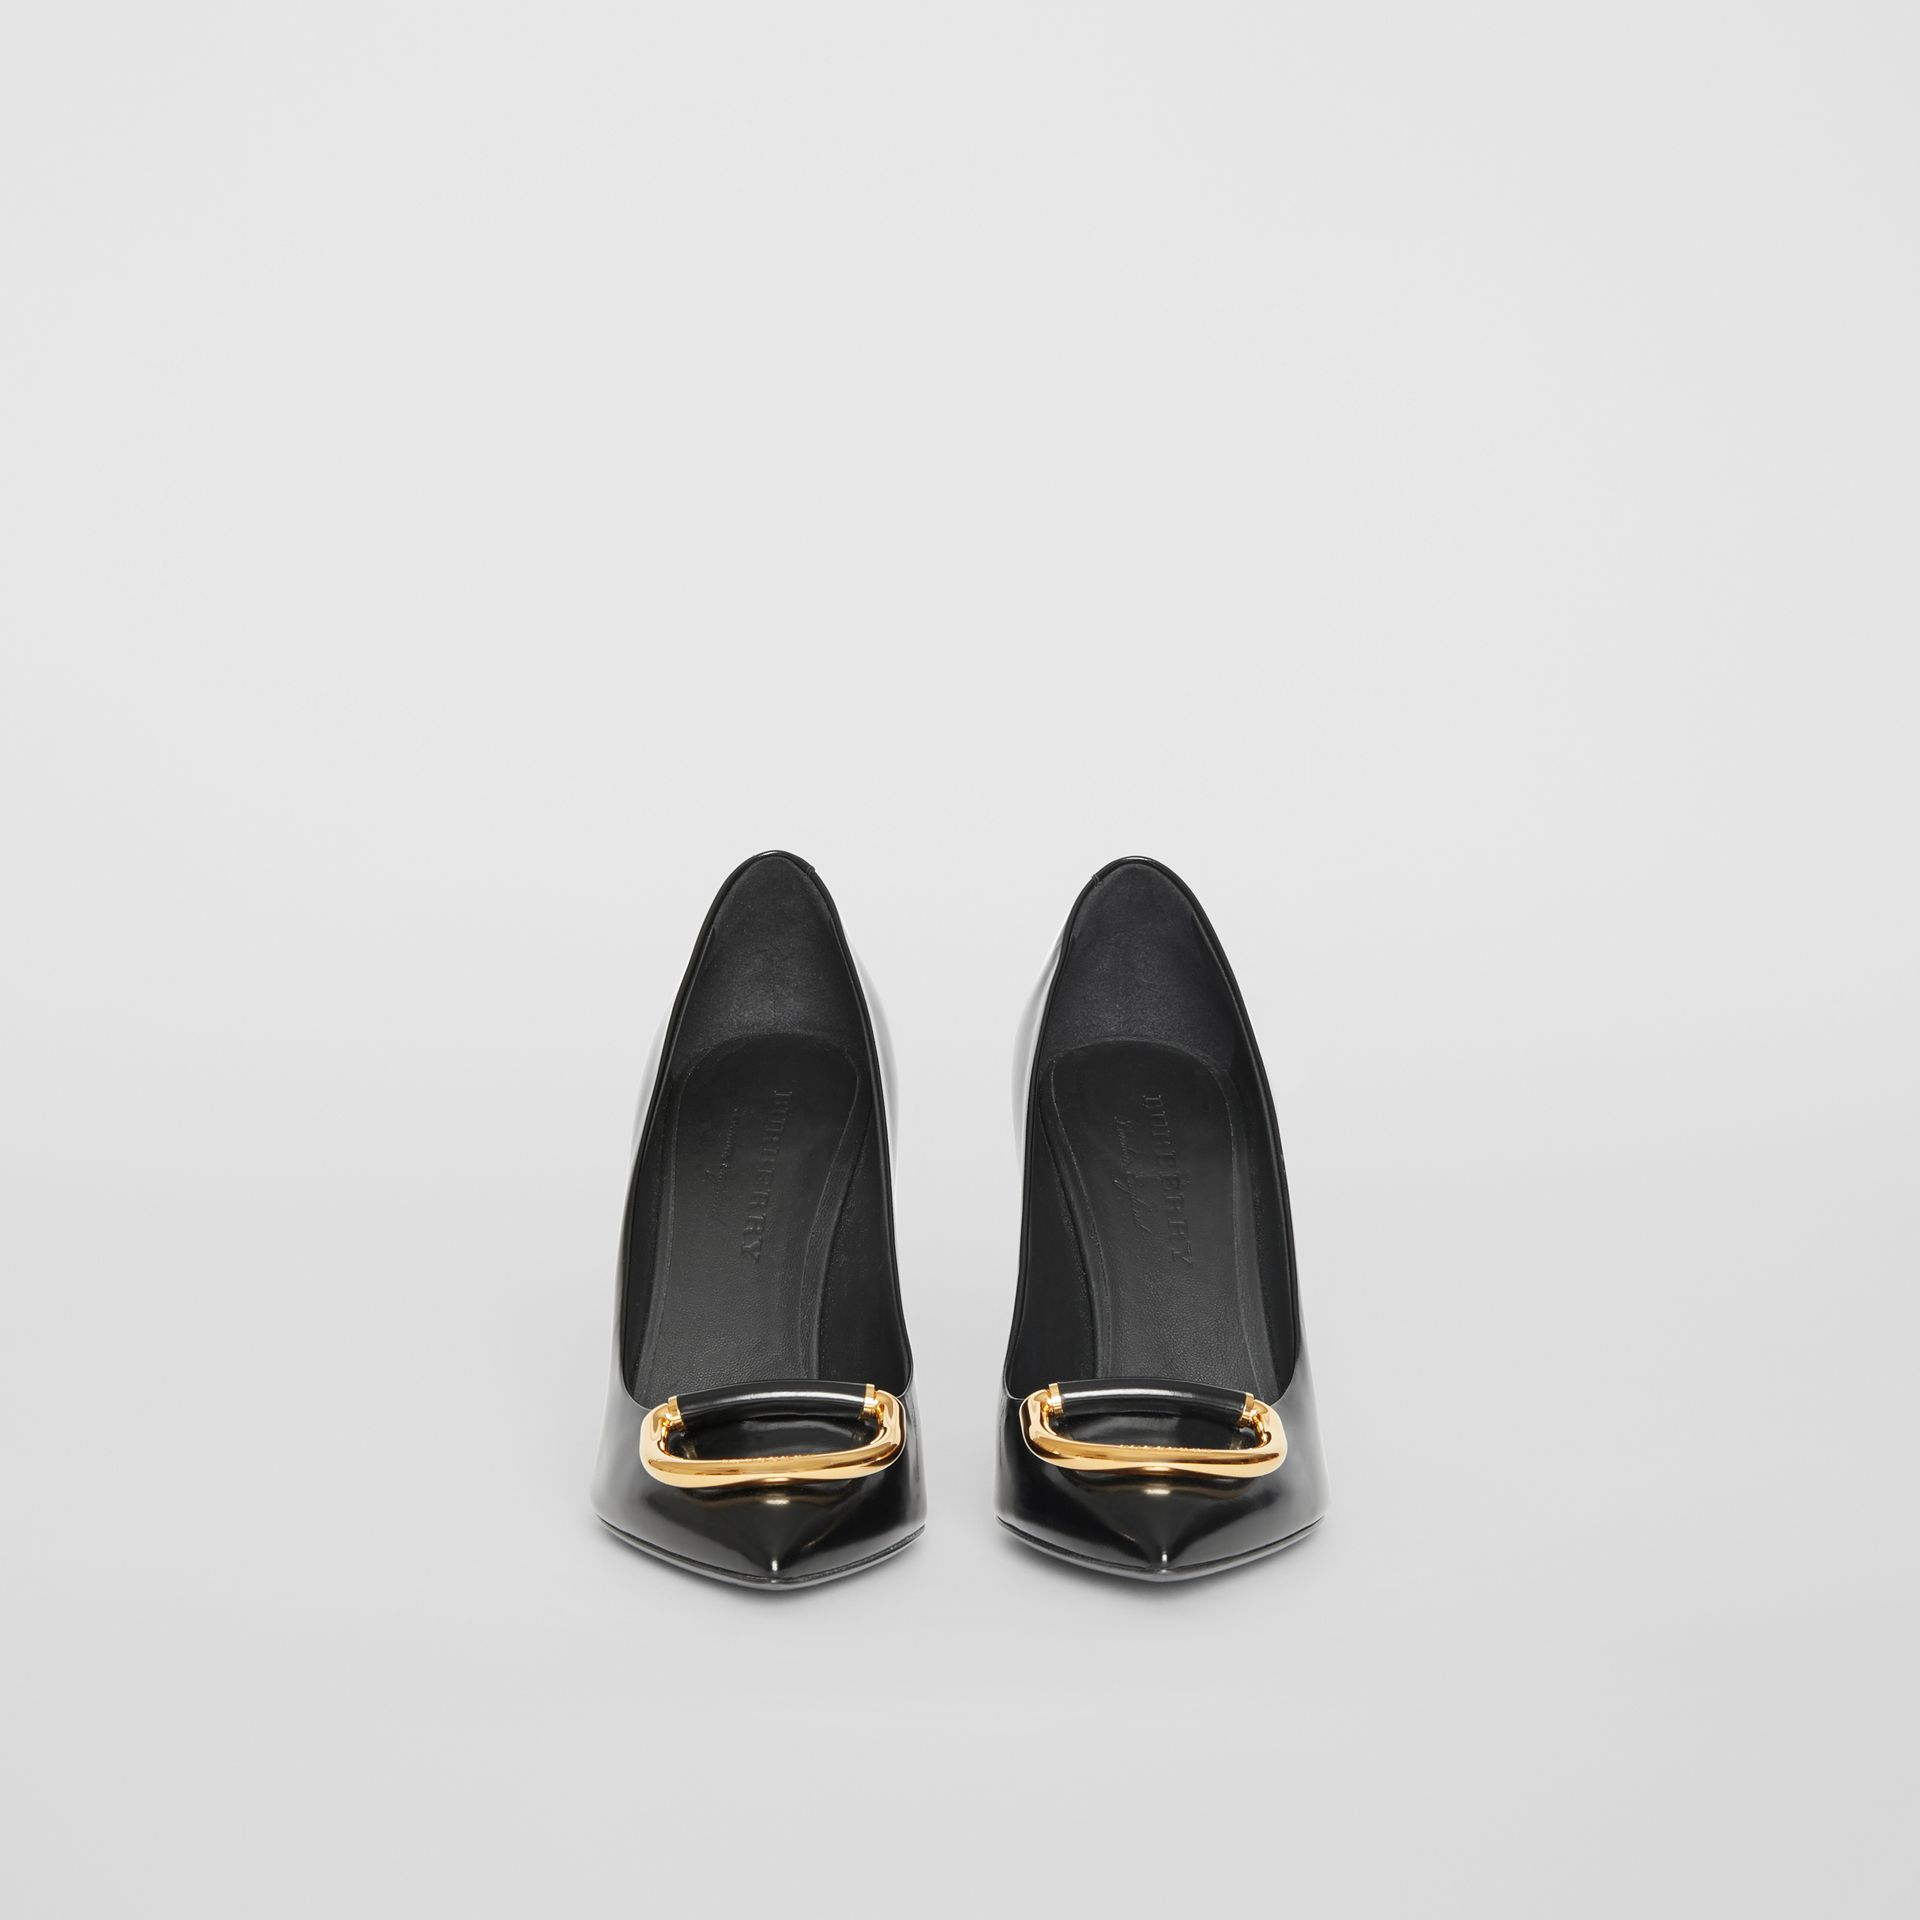 Escarpins The D-ring en cuir (Noir/or) - Femme | Burberry Canada - photo de la galerie 3